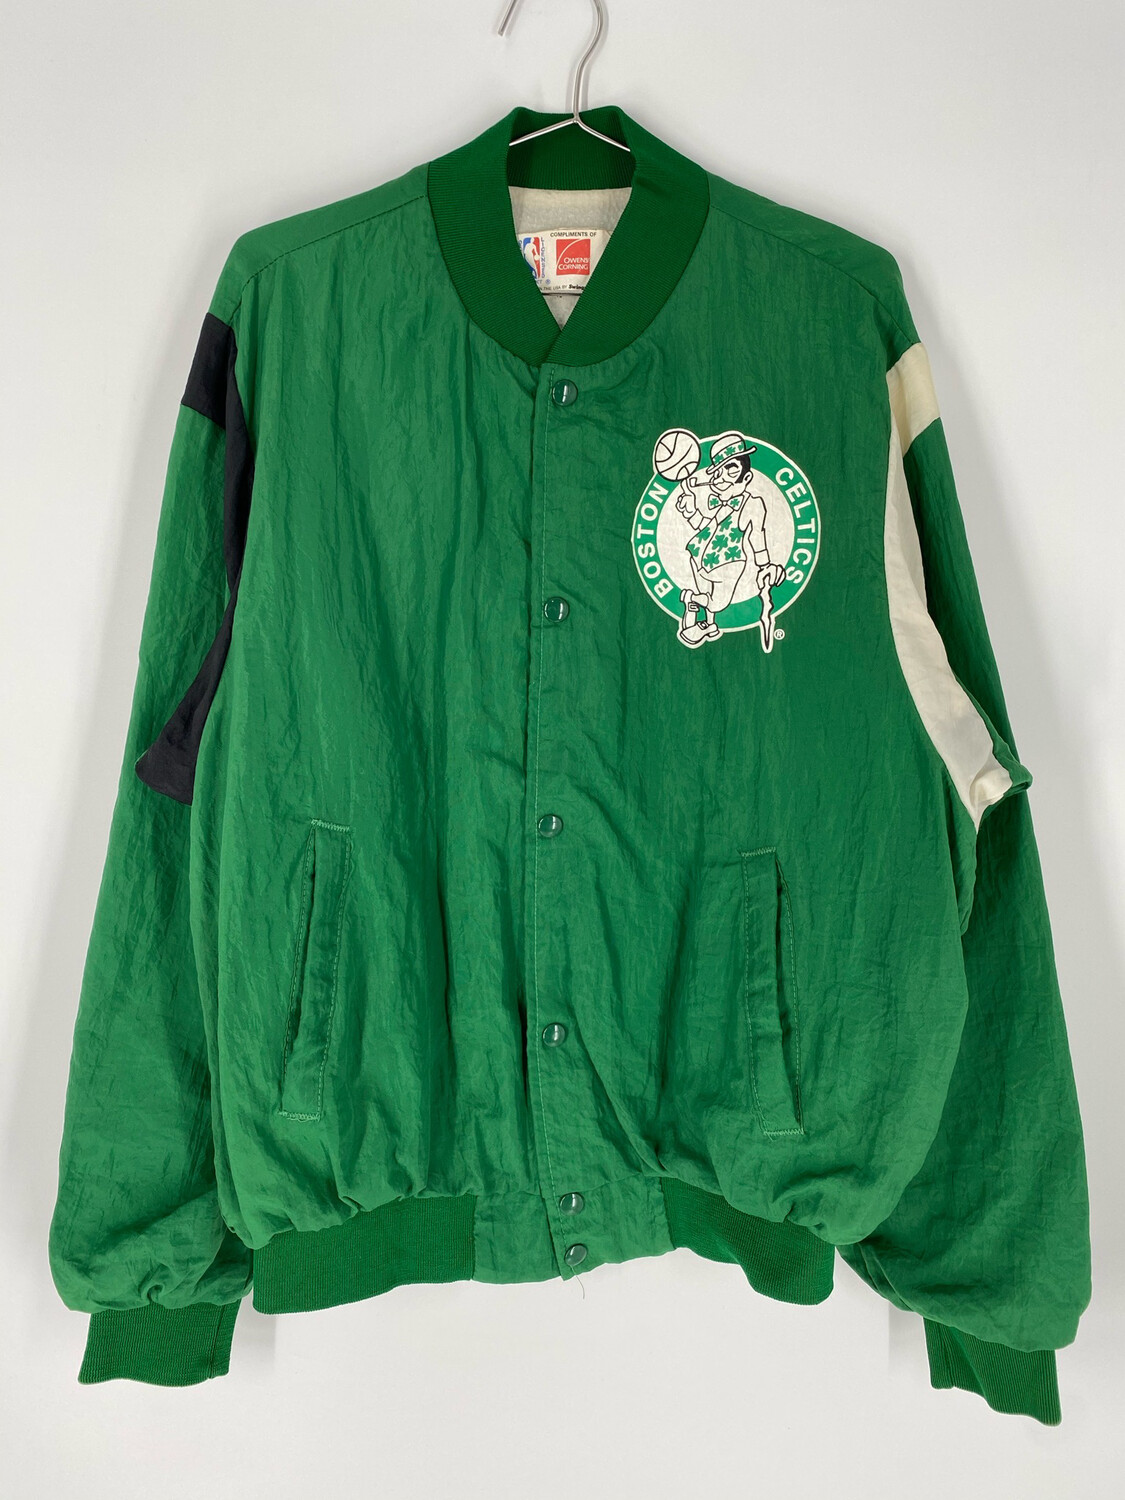 NBA Celtics Bomber Jacket Size Large